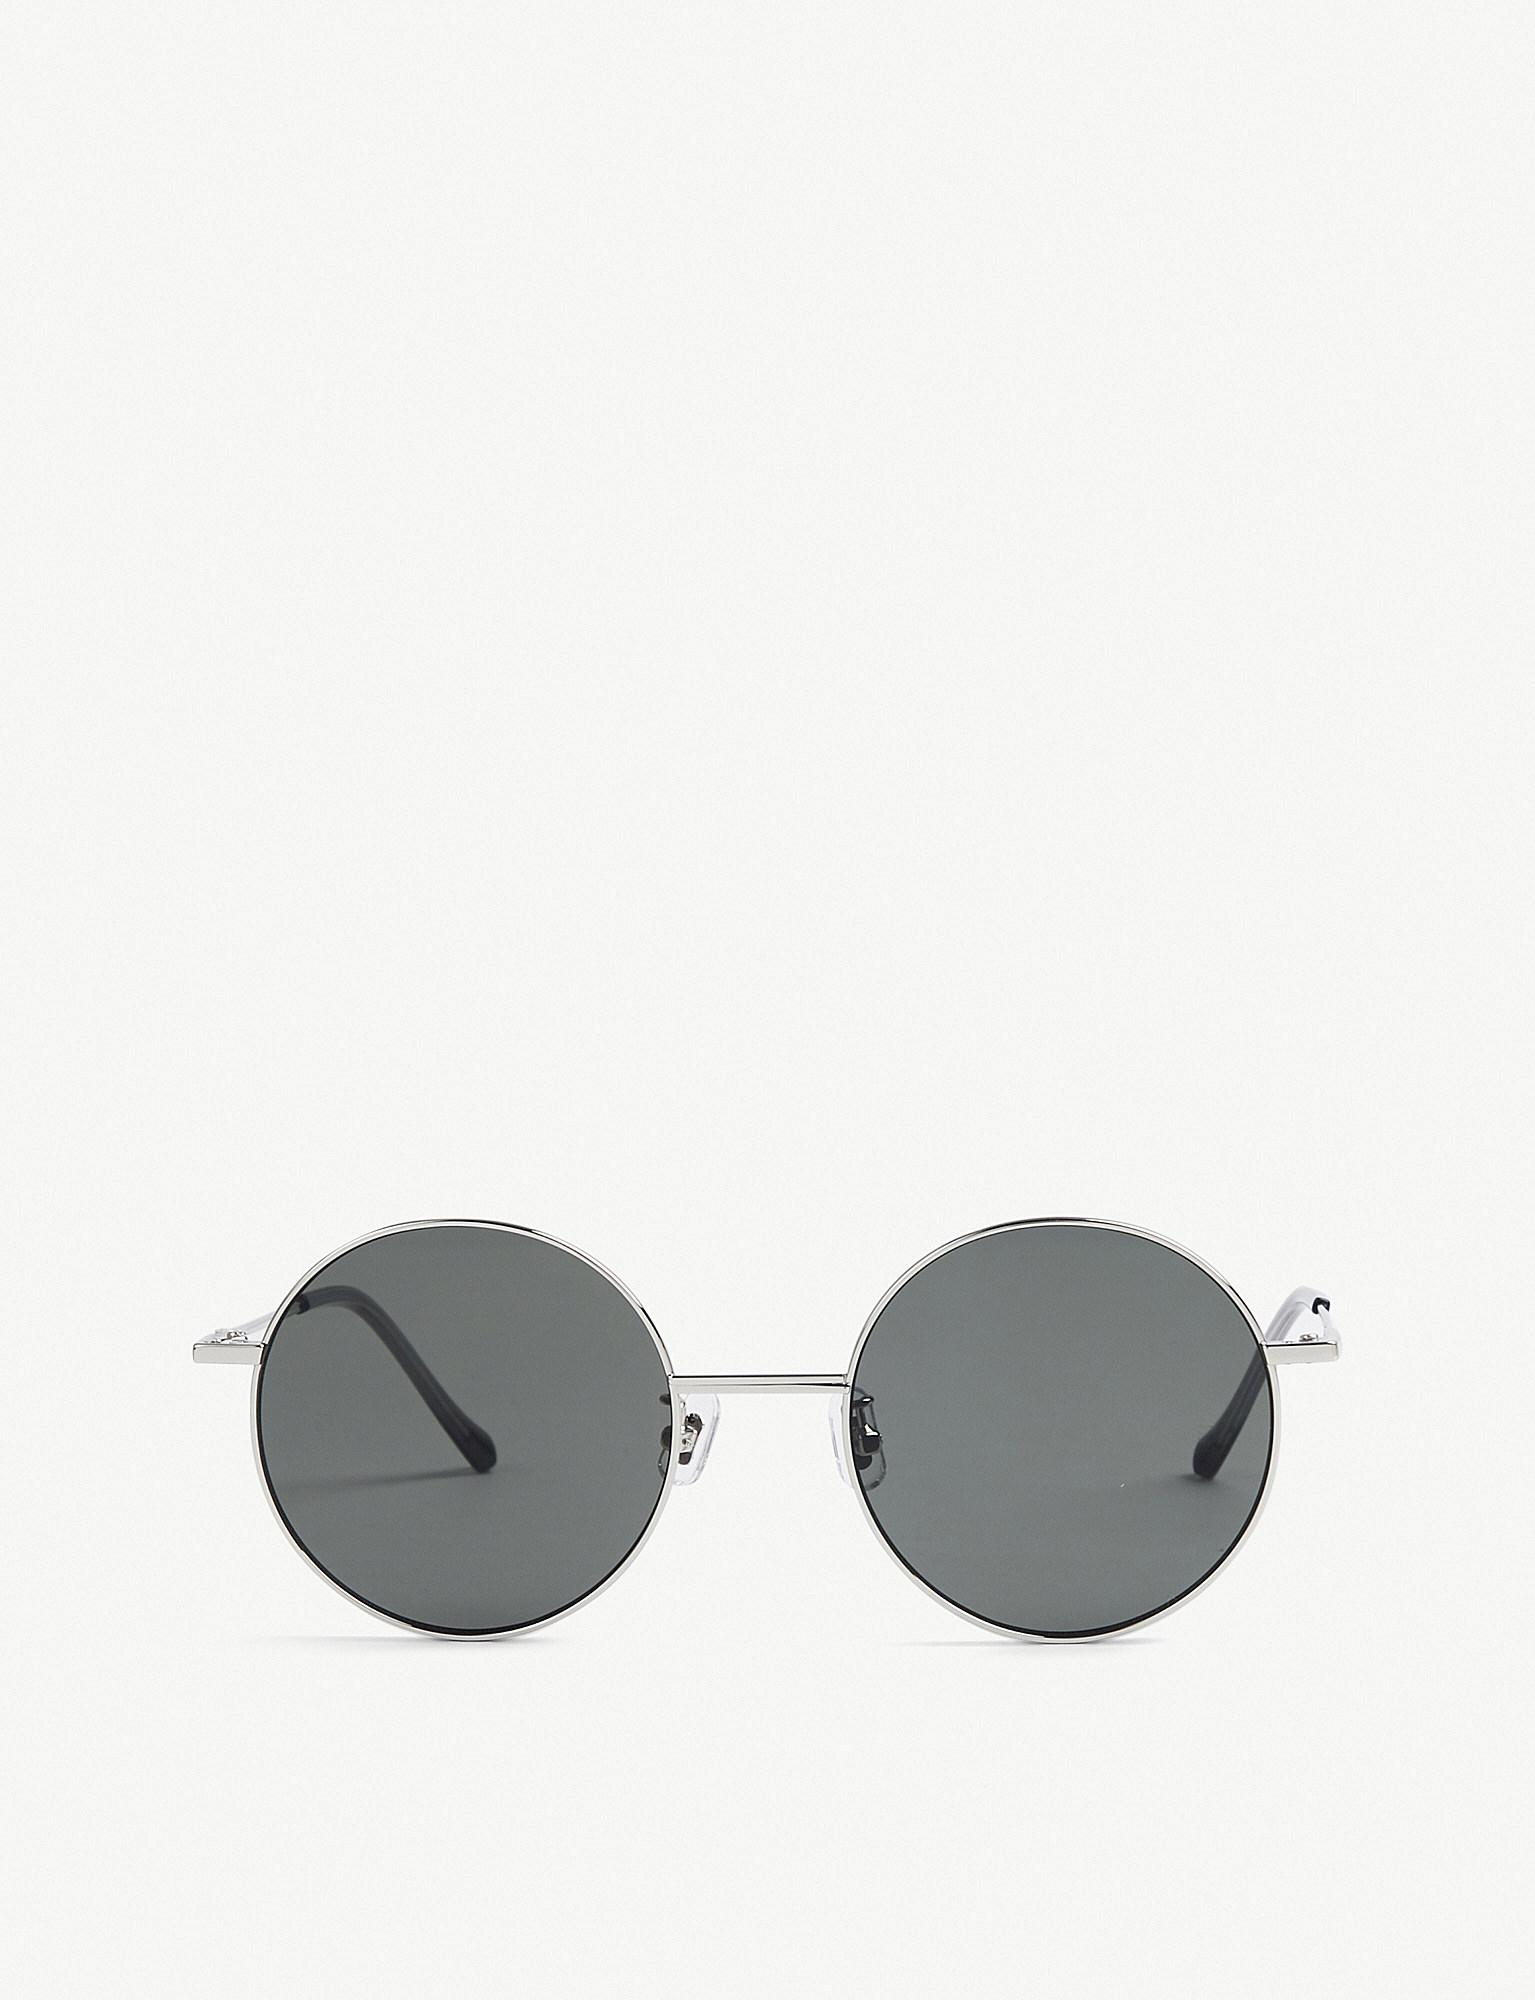 97c551bf9e7 Lyst - Gentle Monster Midnight Sun Tinted Round-frame Sunglasses in ...